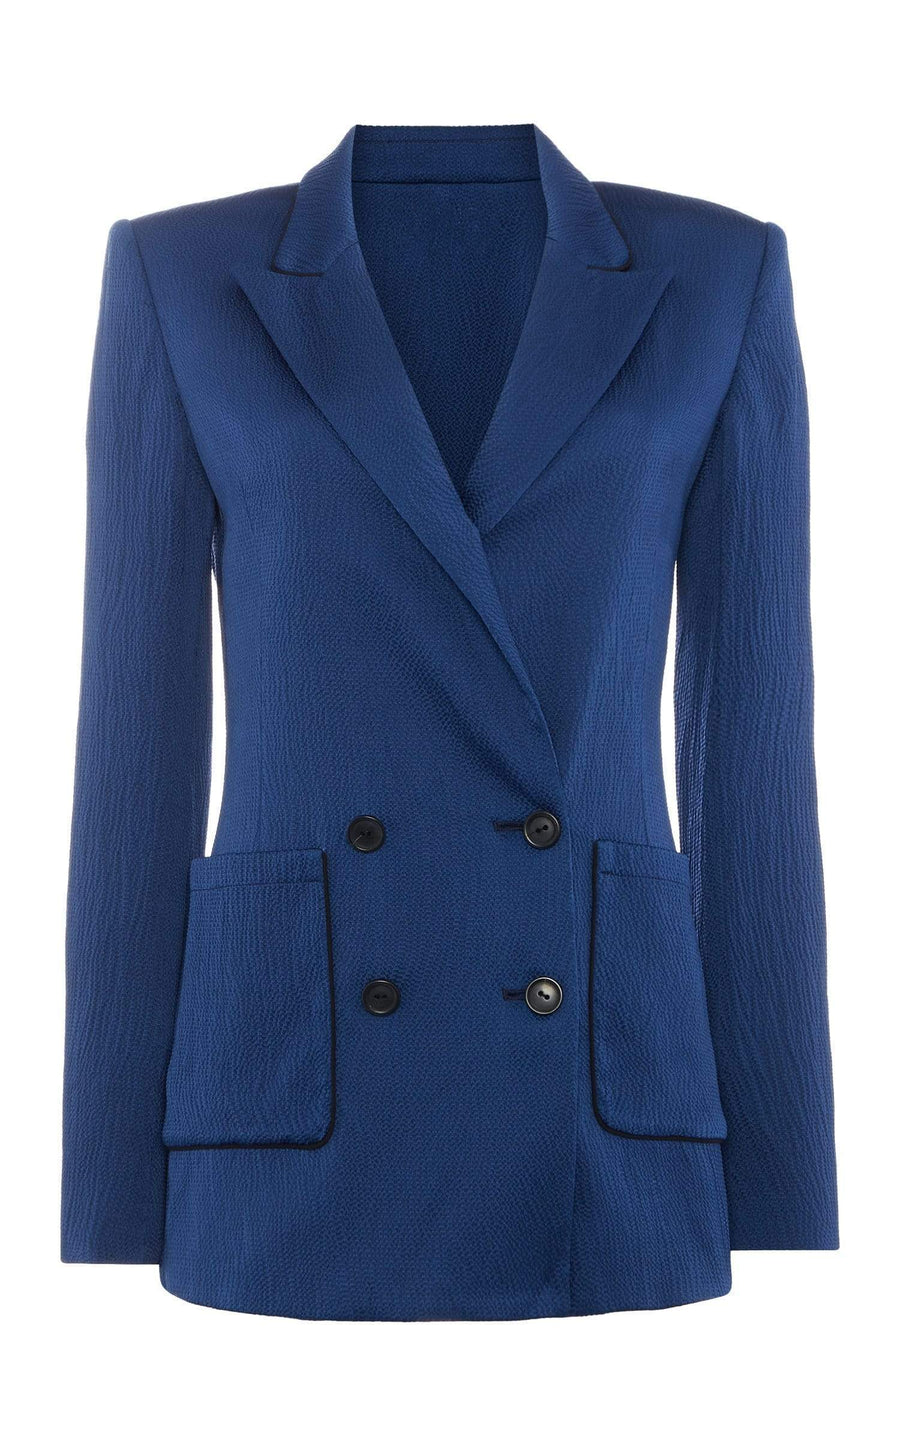 Talbot Jacket In Ultramarine/Navy from Roland Mouret